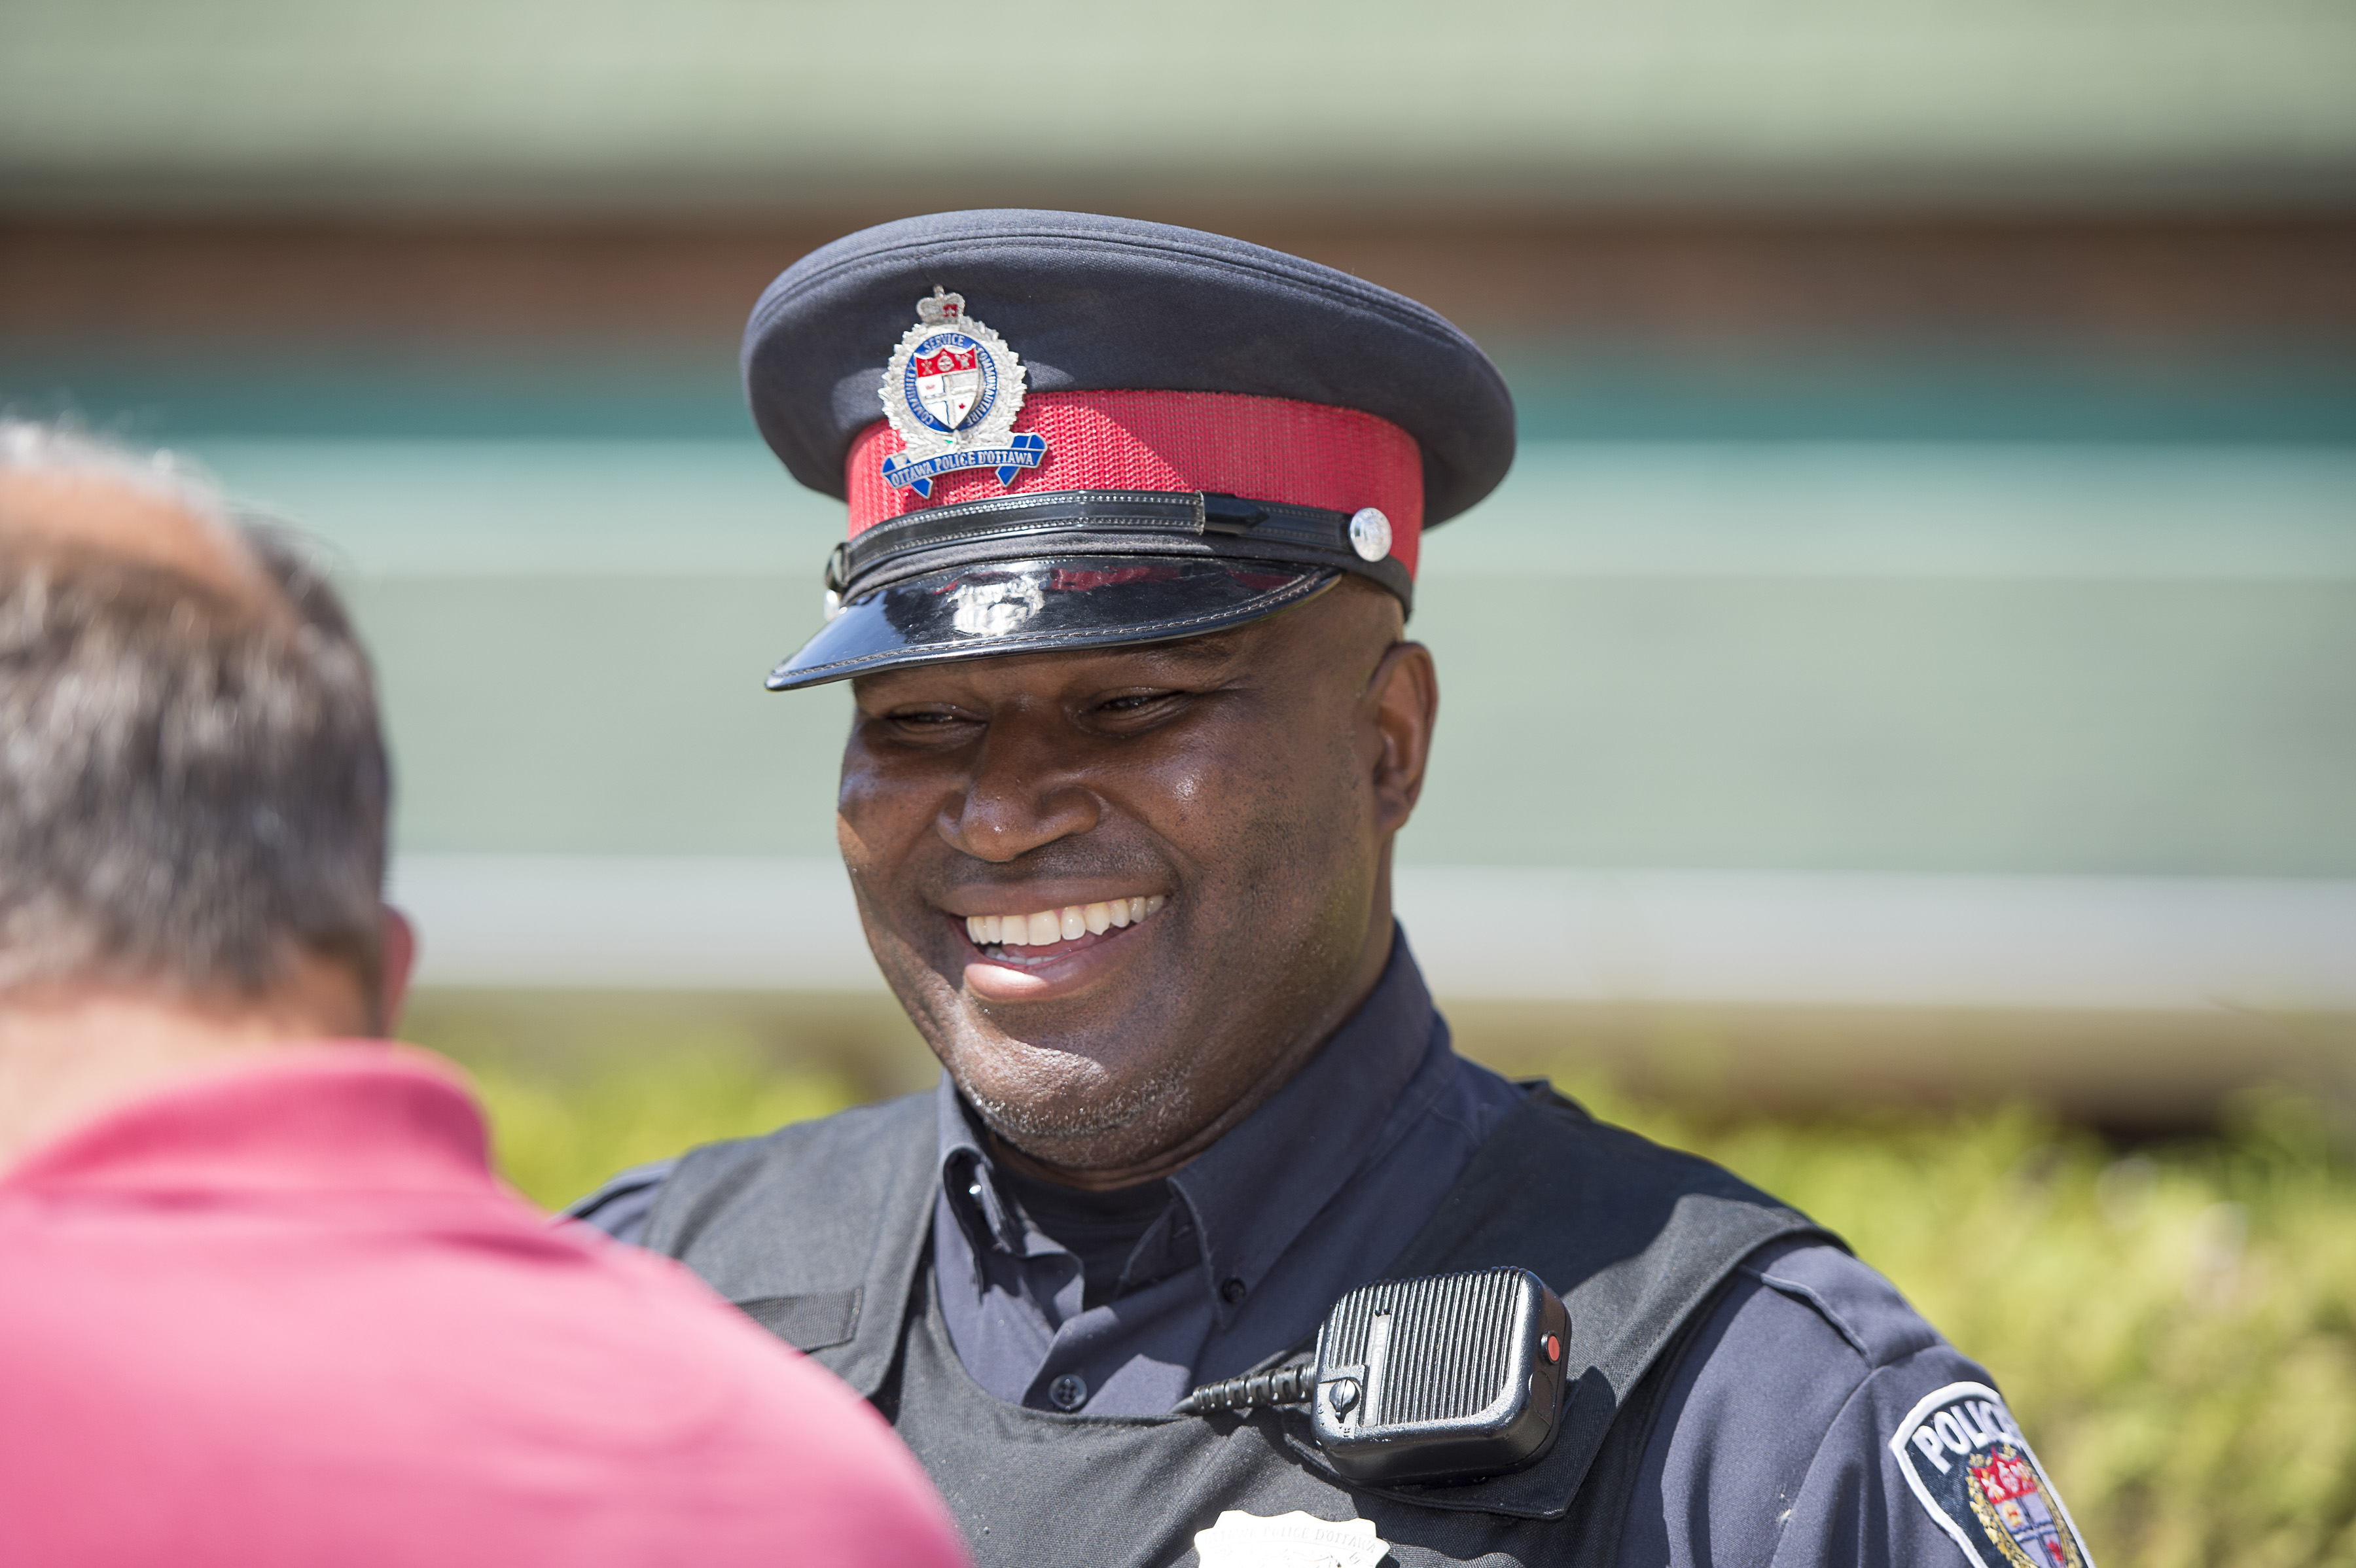 Community Police officer smiling and talking to a member of the public